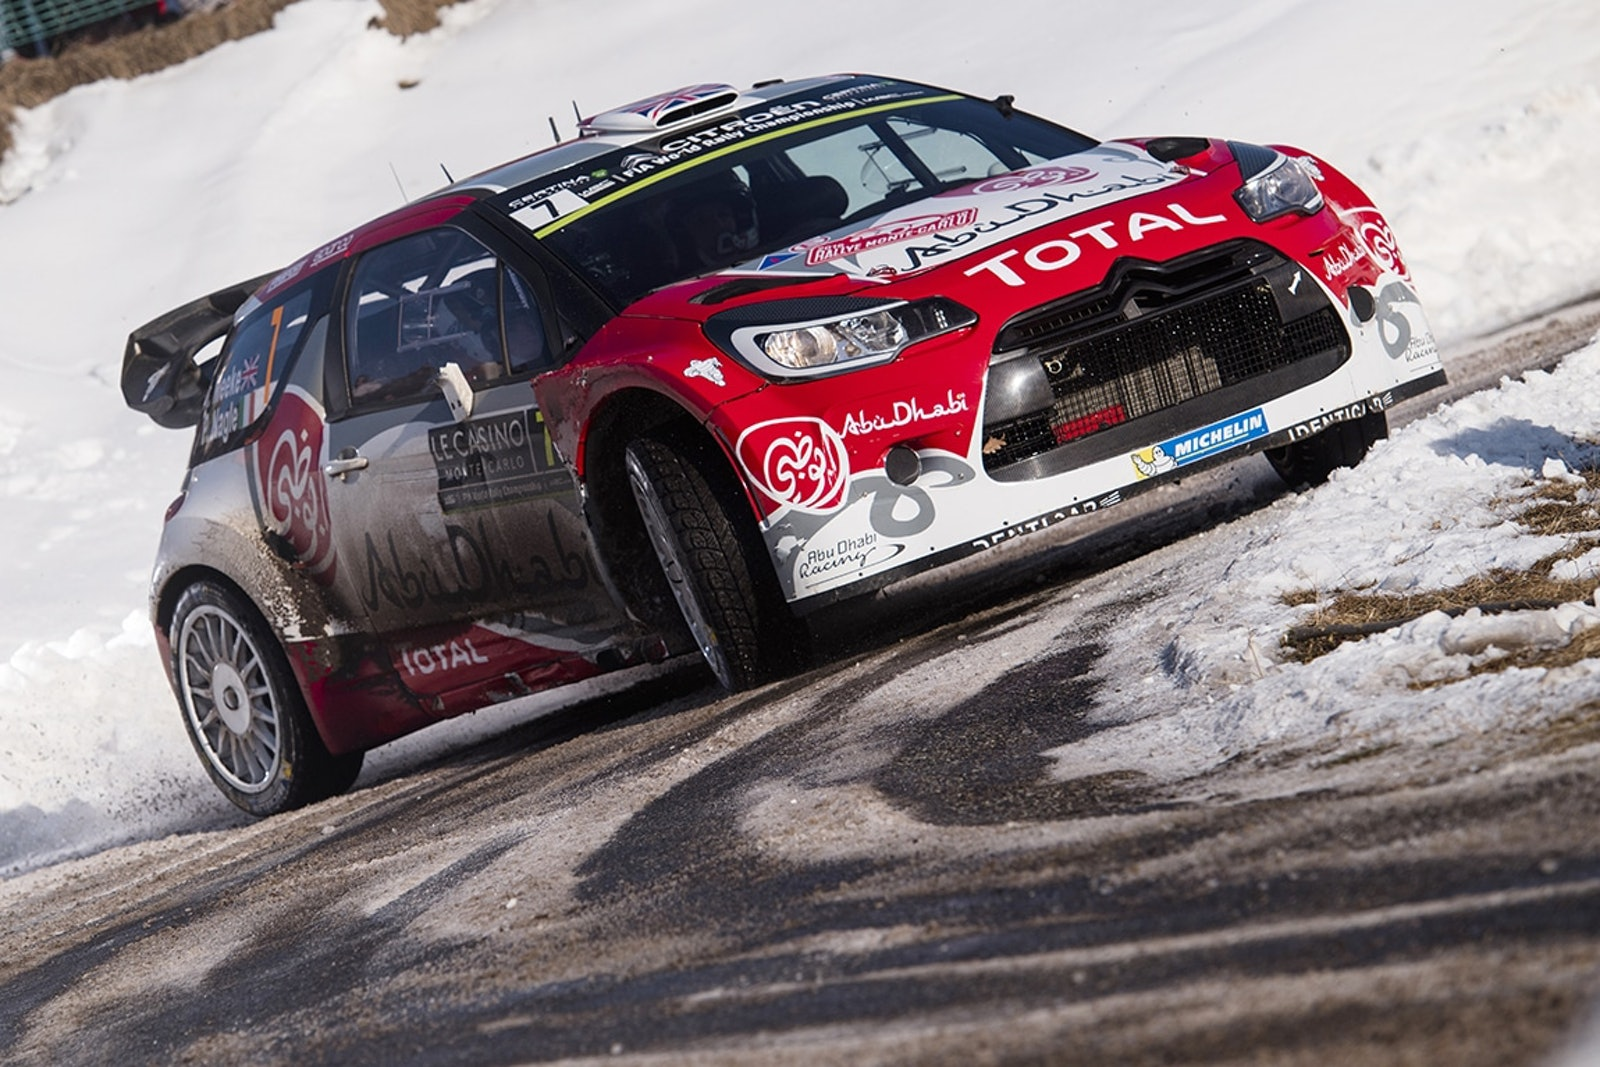 Kris Meeke (GBR) competes during the FIA World Rally Championship 2016 in Monte Carlo, Monaco on January 23, 2016 // Jaanus Ree/Red Bull Content Pool // P-20160124-00001 // Usage for editorial use only // Please go to www.redbullcontentpool.com for further information. //